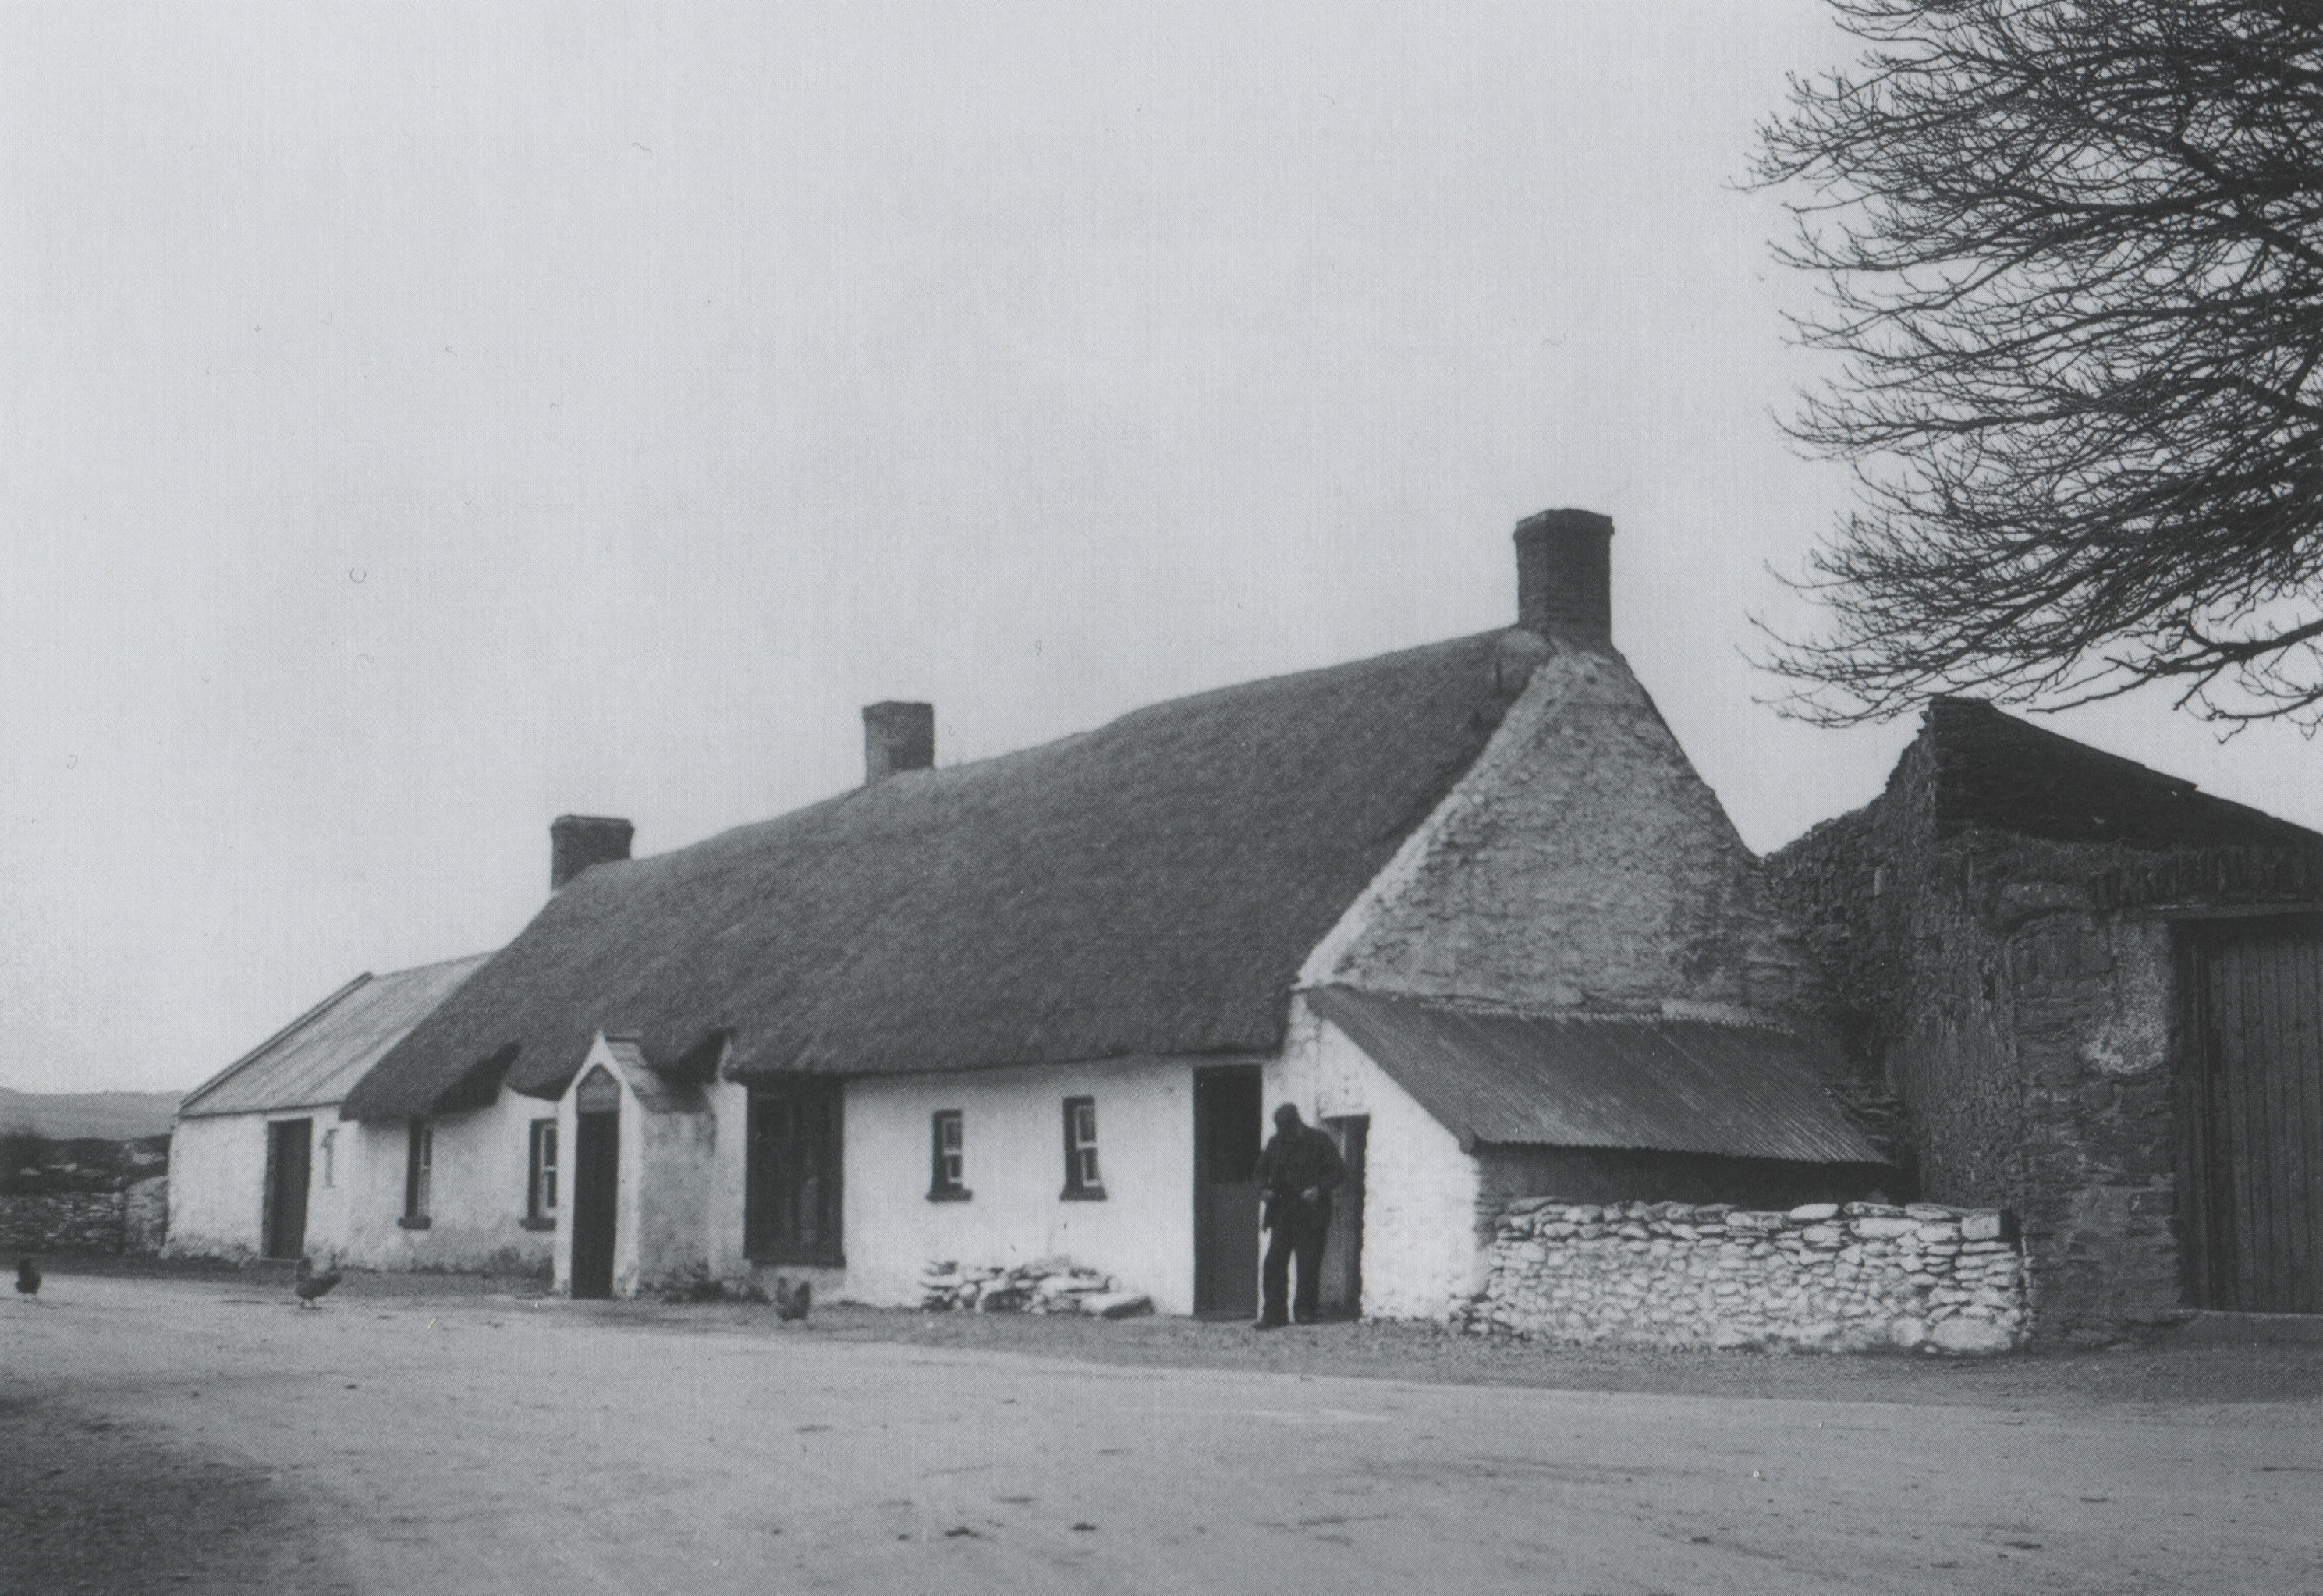 Thatched public house. Tall chimneys and low gables, along with the absence of súgán ropes, indicate that this is an inland location.